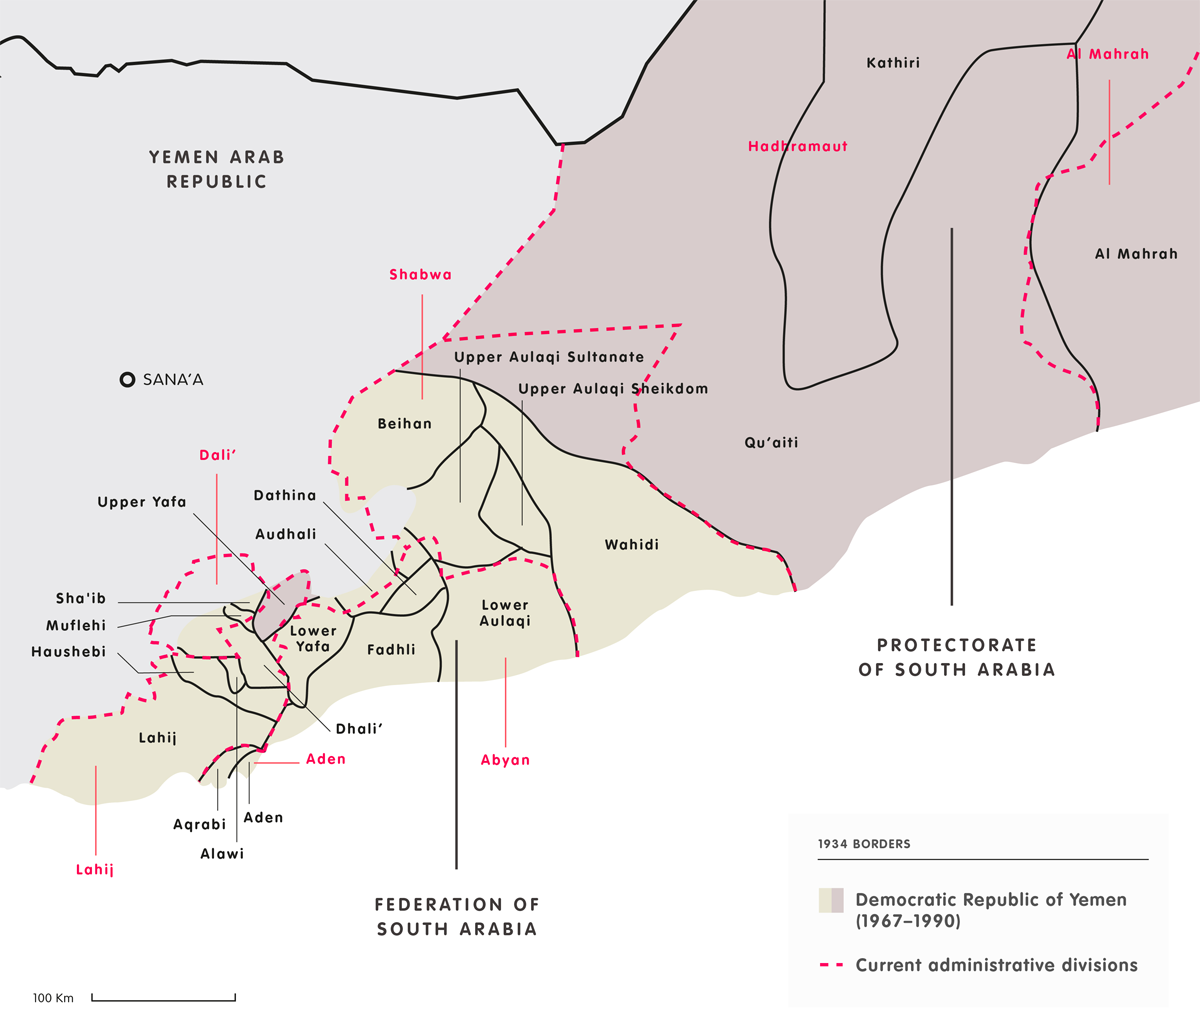 Map of Yemen borders in 1934